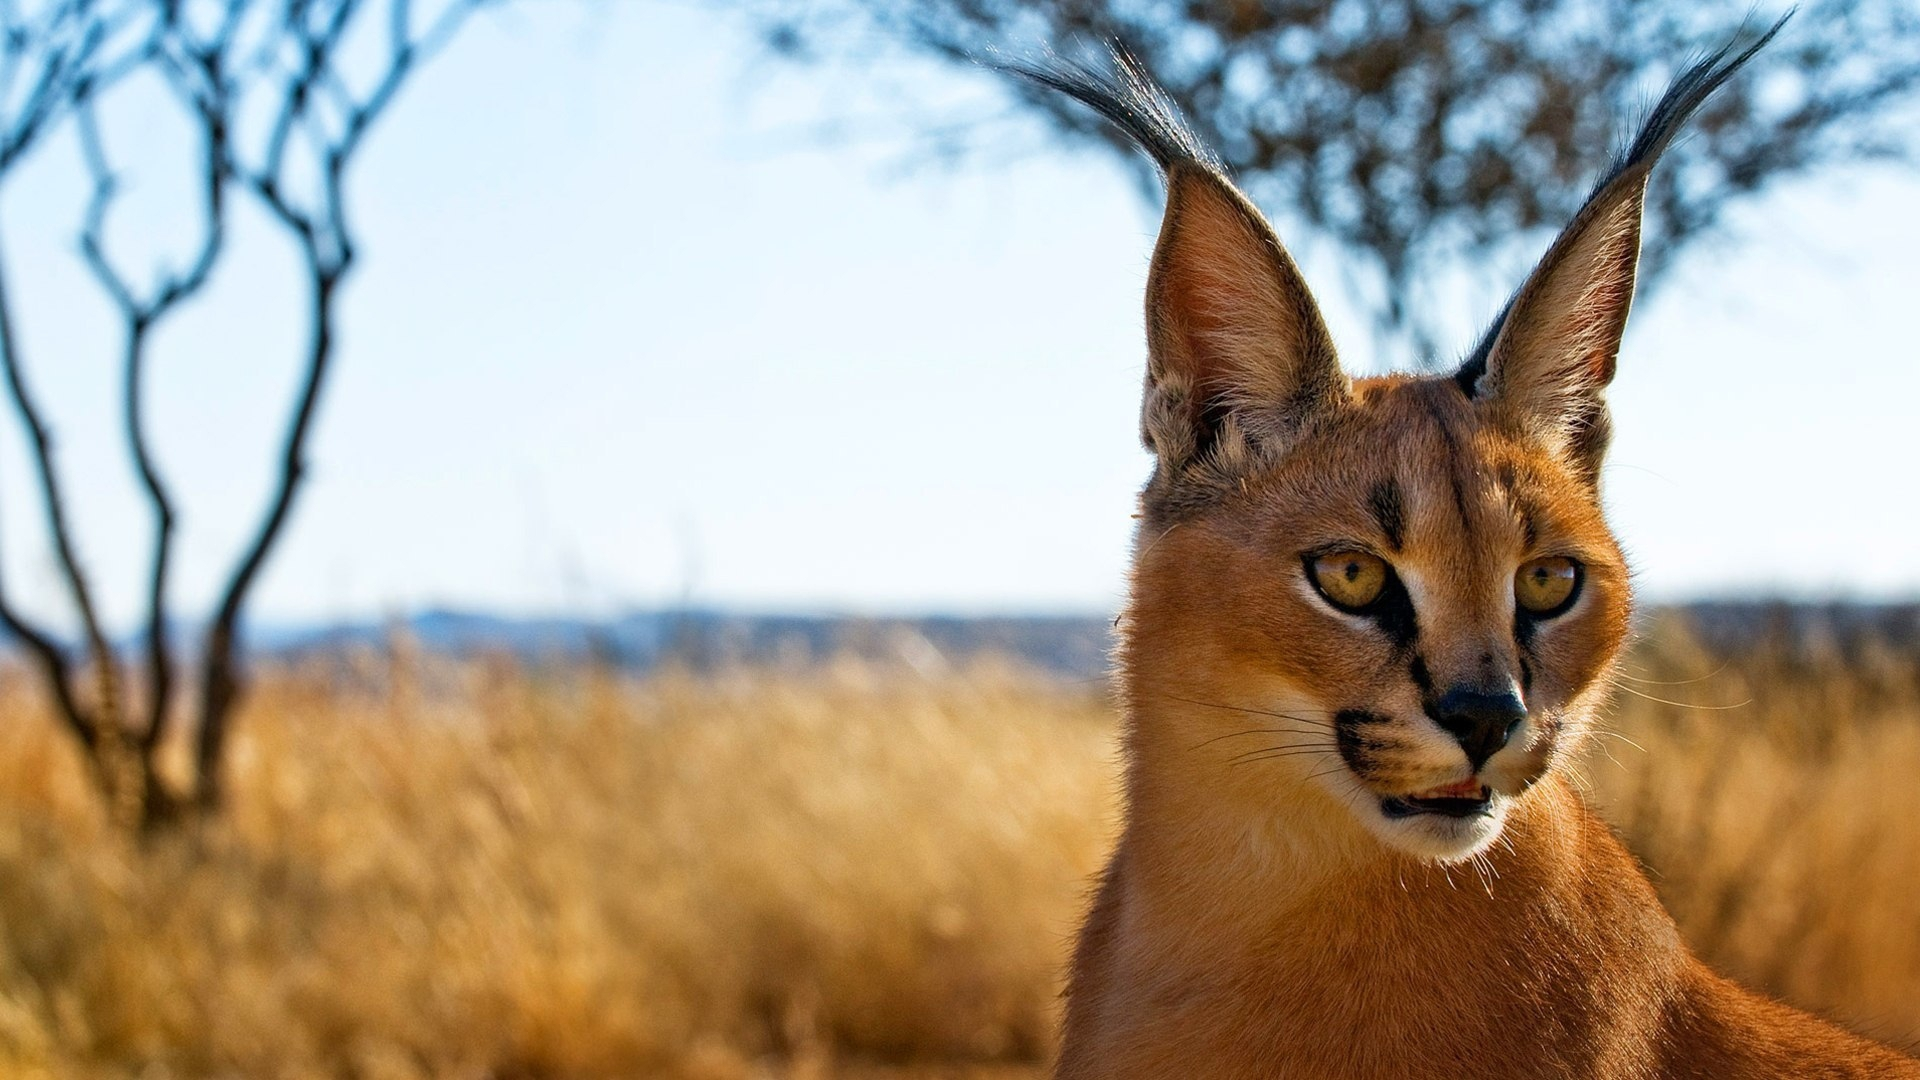 Caracal Wallpaper For Computer